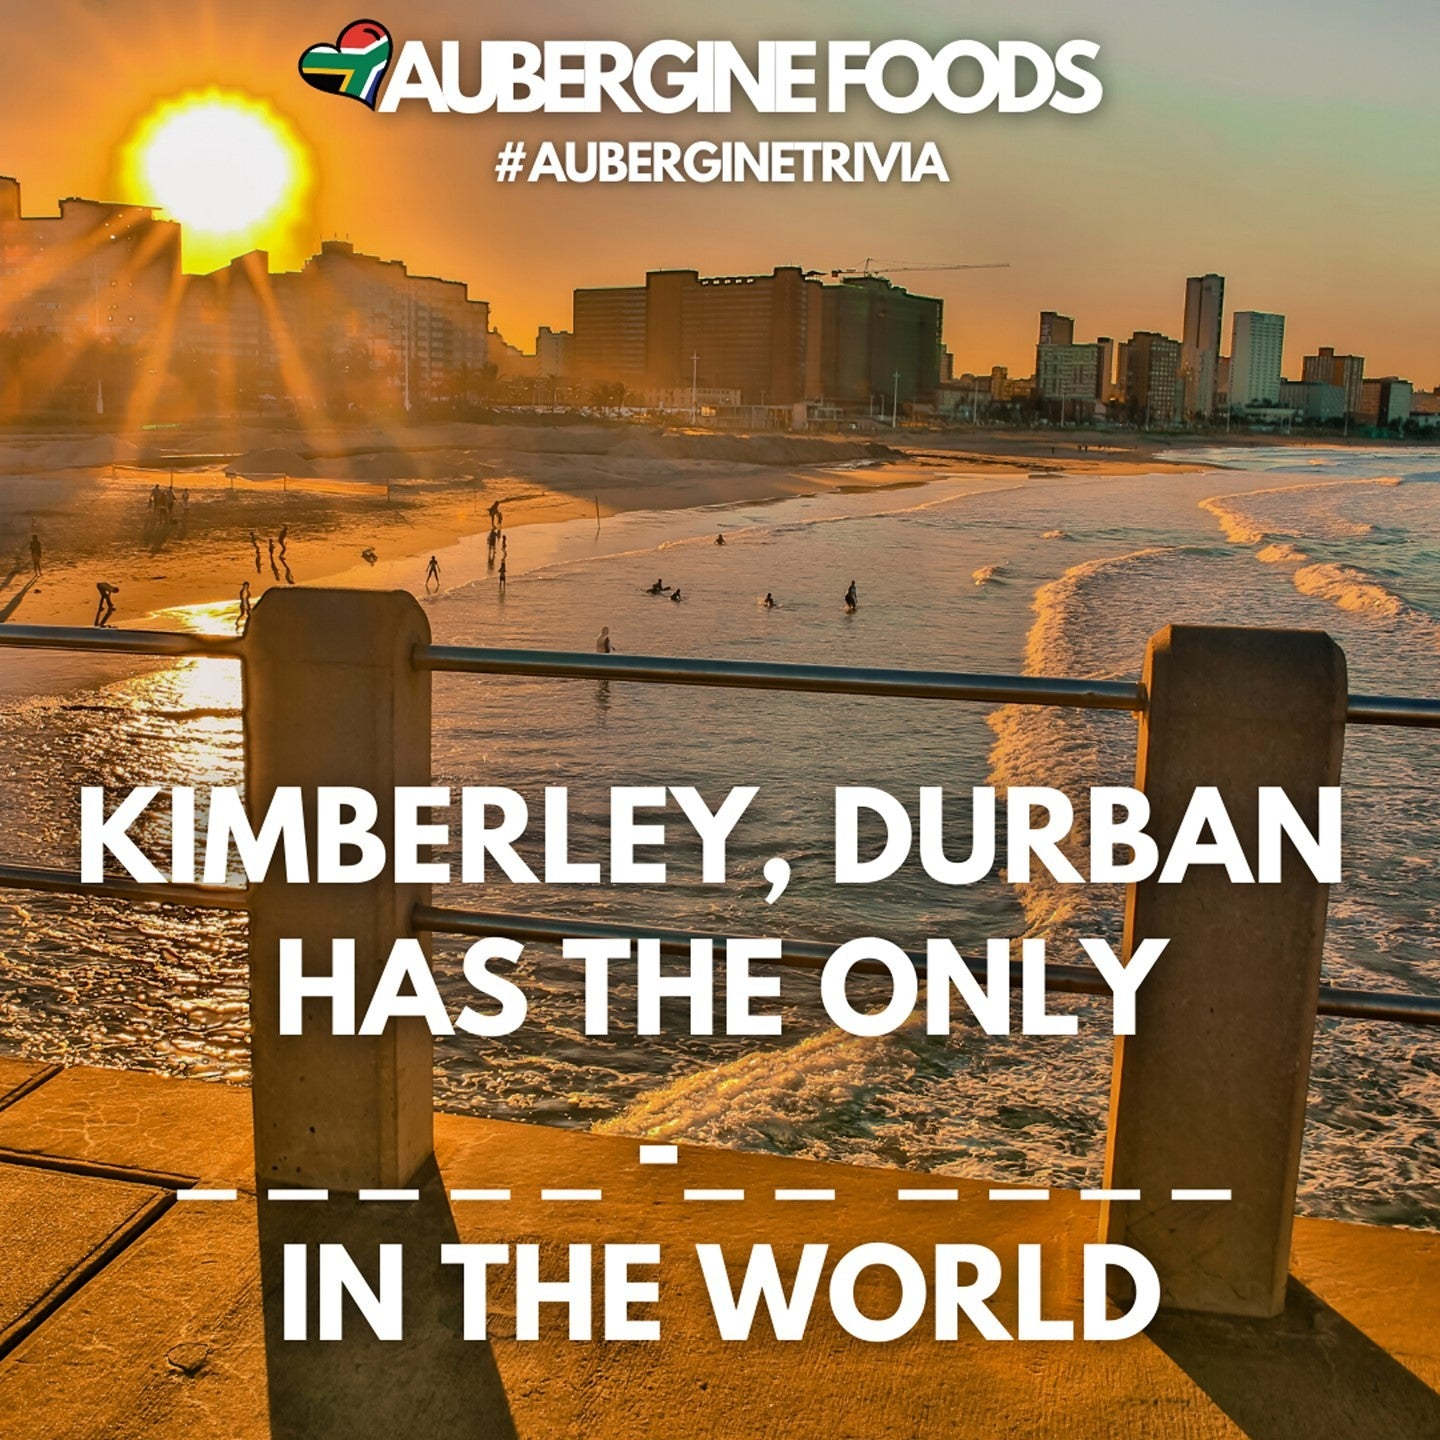 Kimberley, Durban, has the only...